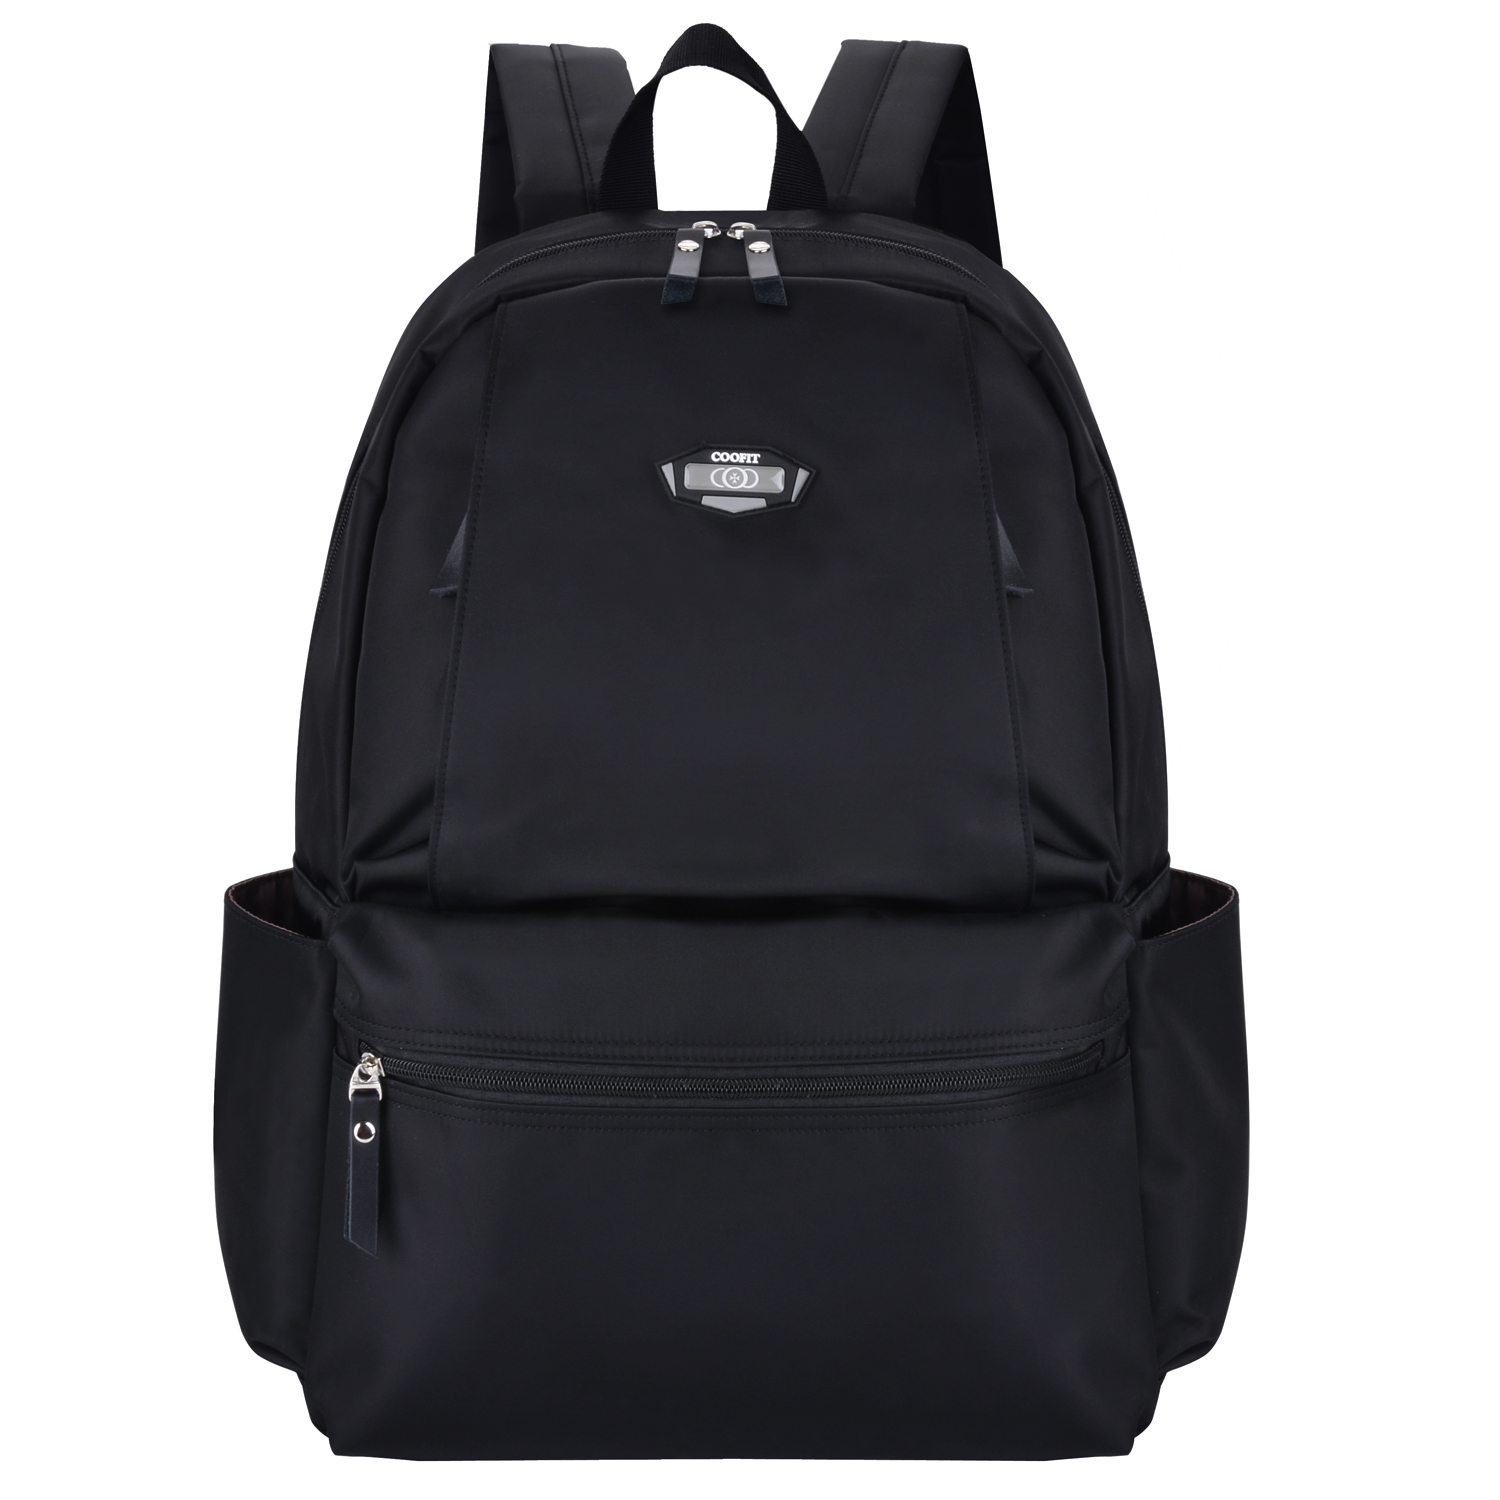 Unisex 14'' waterproof Laptop Backpack